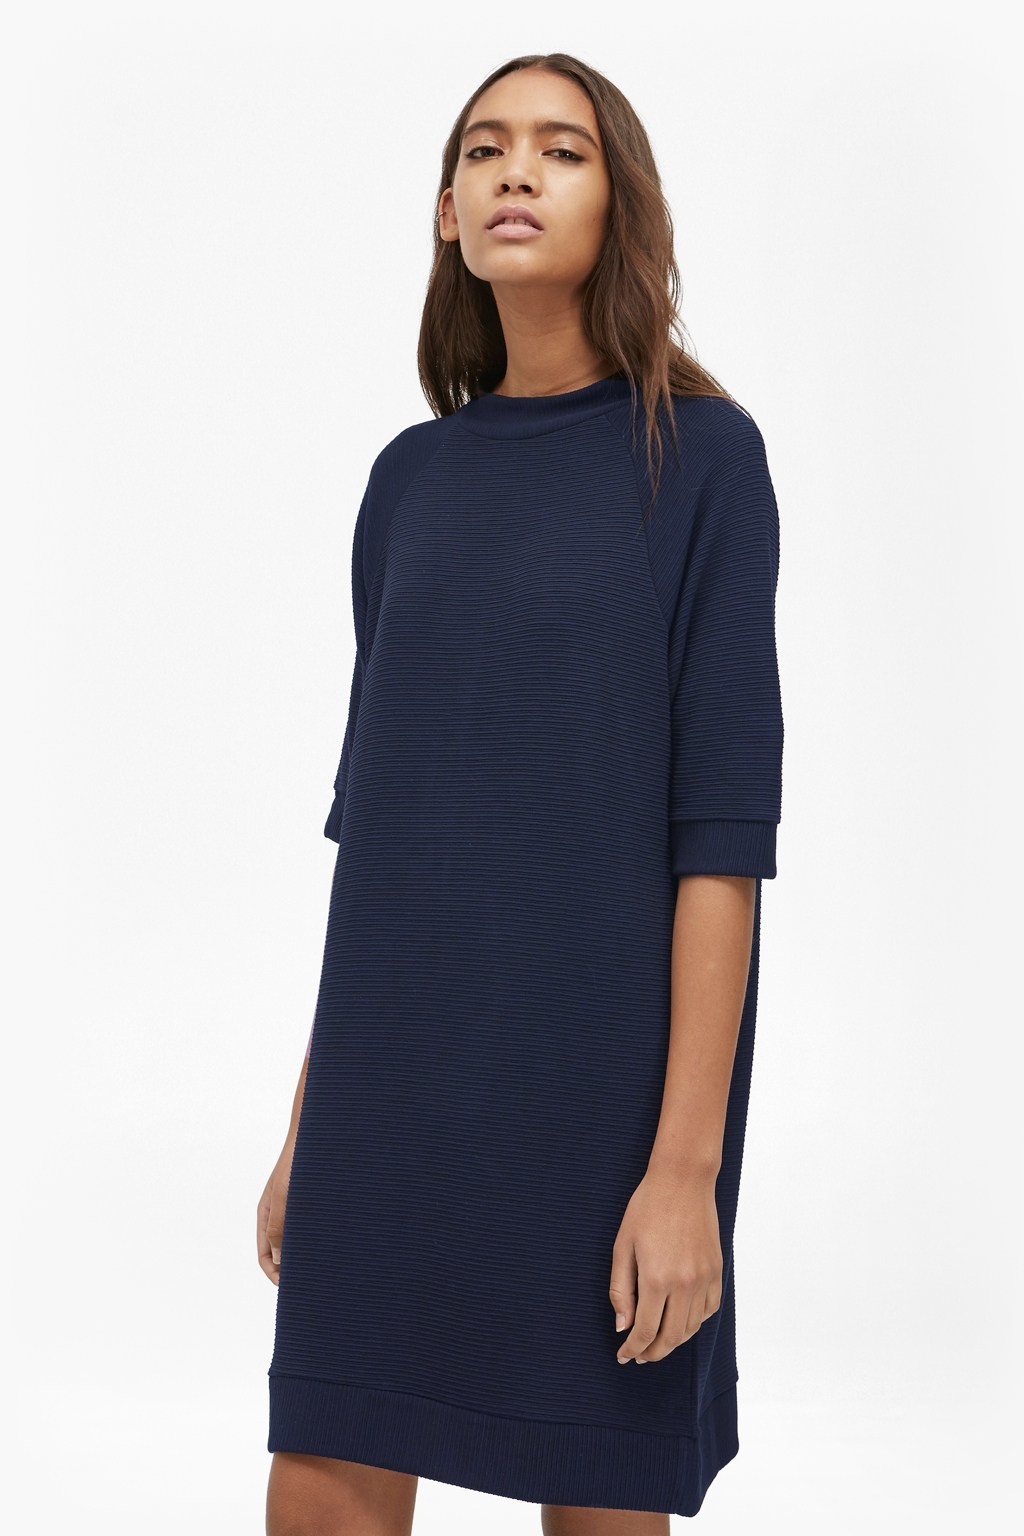 Summer Sudan Jumper Dress Utility Blue - style: shift; pattern: plain; predominant colour: navy; occasions: work, creative work; length: just above the knee; fit: body skimming; neckline: crew; sleeve length: 3/4 length; sleeve style: standard; texture group: knits/crochet; pattern type: knitted - fine stitch; fibres: viscose/rayon - mix; season: s/s 2016; wardrobe: investment